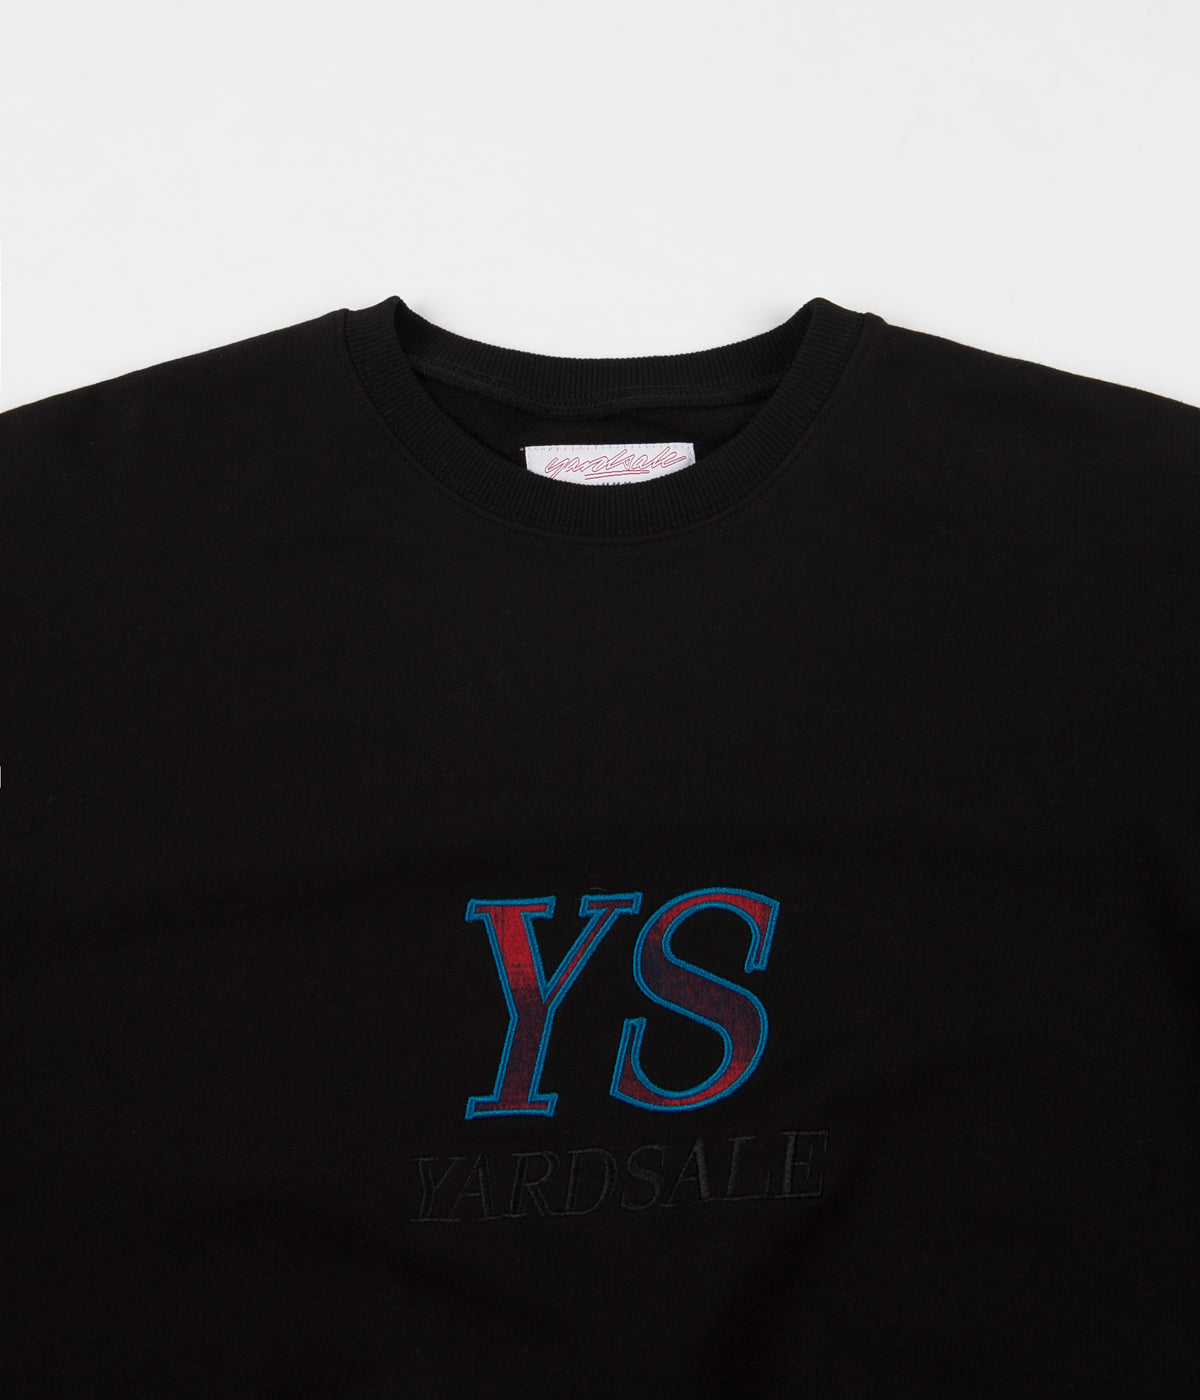 Yardsale YS Tartan Crewneck Sweatshirt - Black